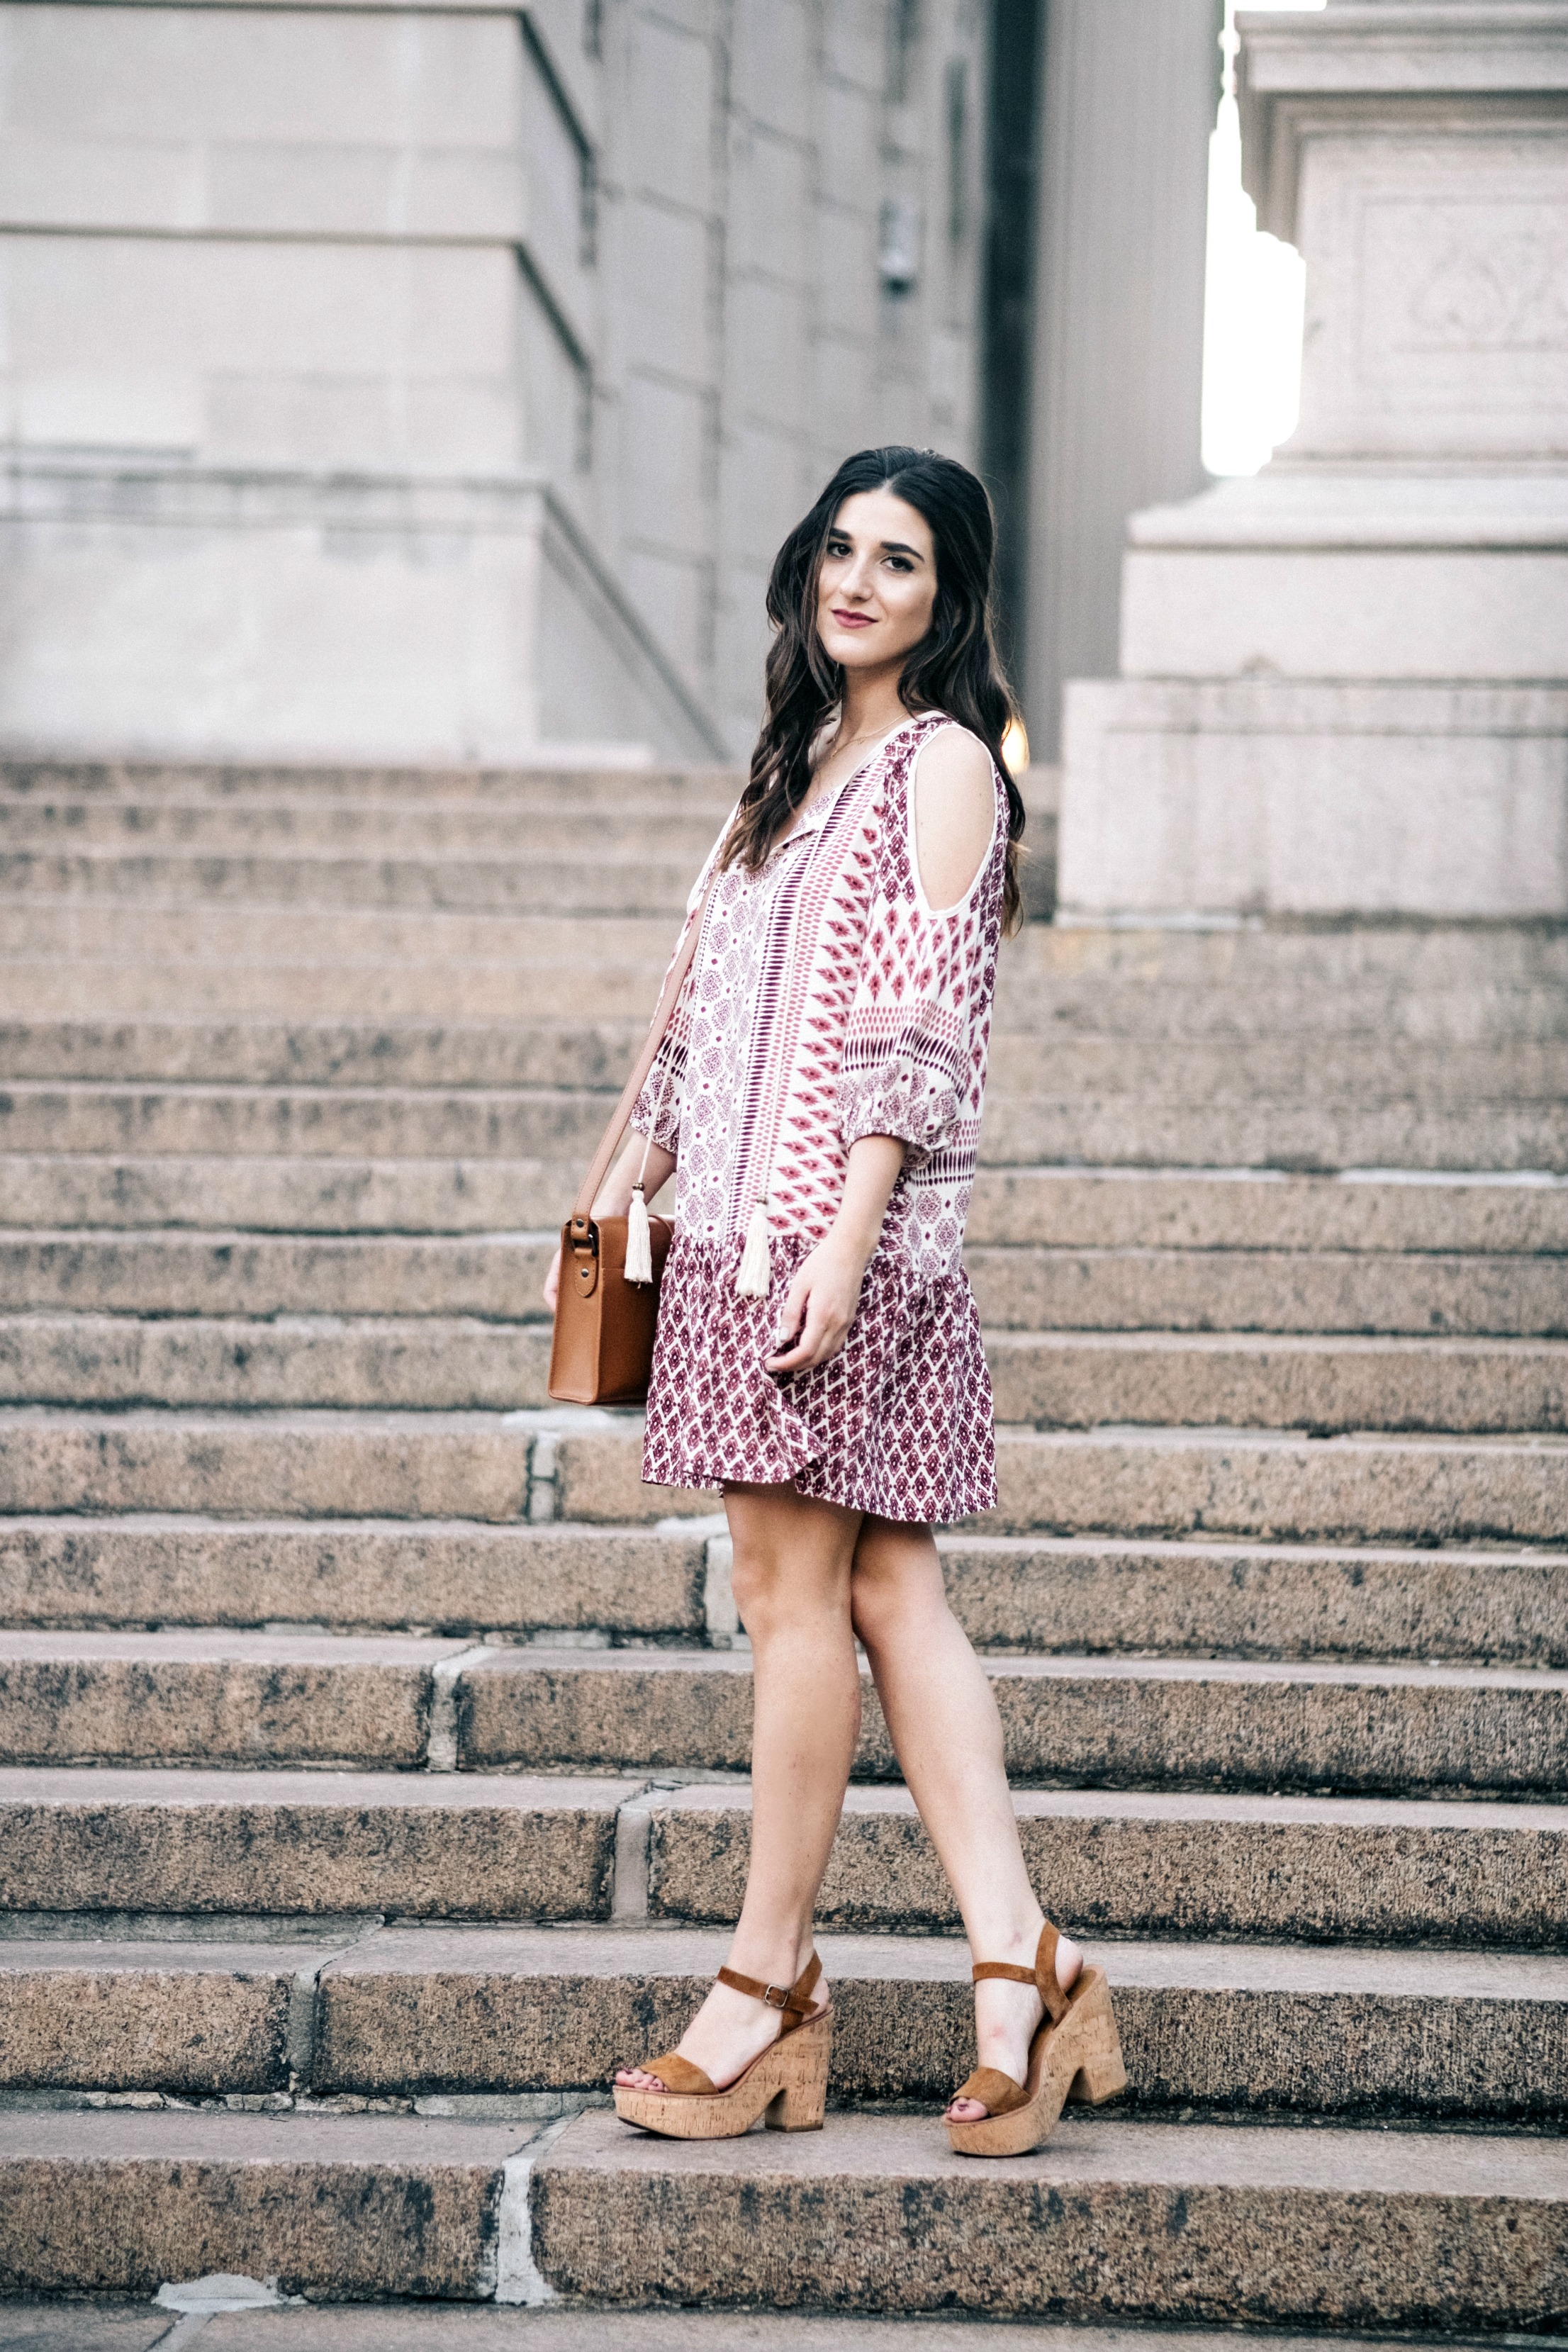 Printed Boho Dress West Kei Louboutins & Love Fashion Blog Esther Santer NYC Street Style Blogger Outfit OOTD Trendy Tassels Pattern Tan Crossbody Elk Accessories Bag Gold Choker Jewelry Hair Women Inspo Snake Bracelet Dolce Vita Cork Wedges Summer.jpg